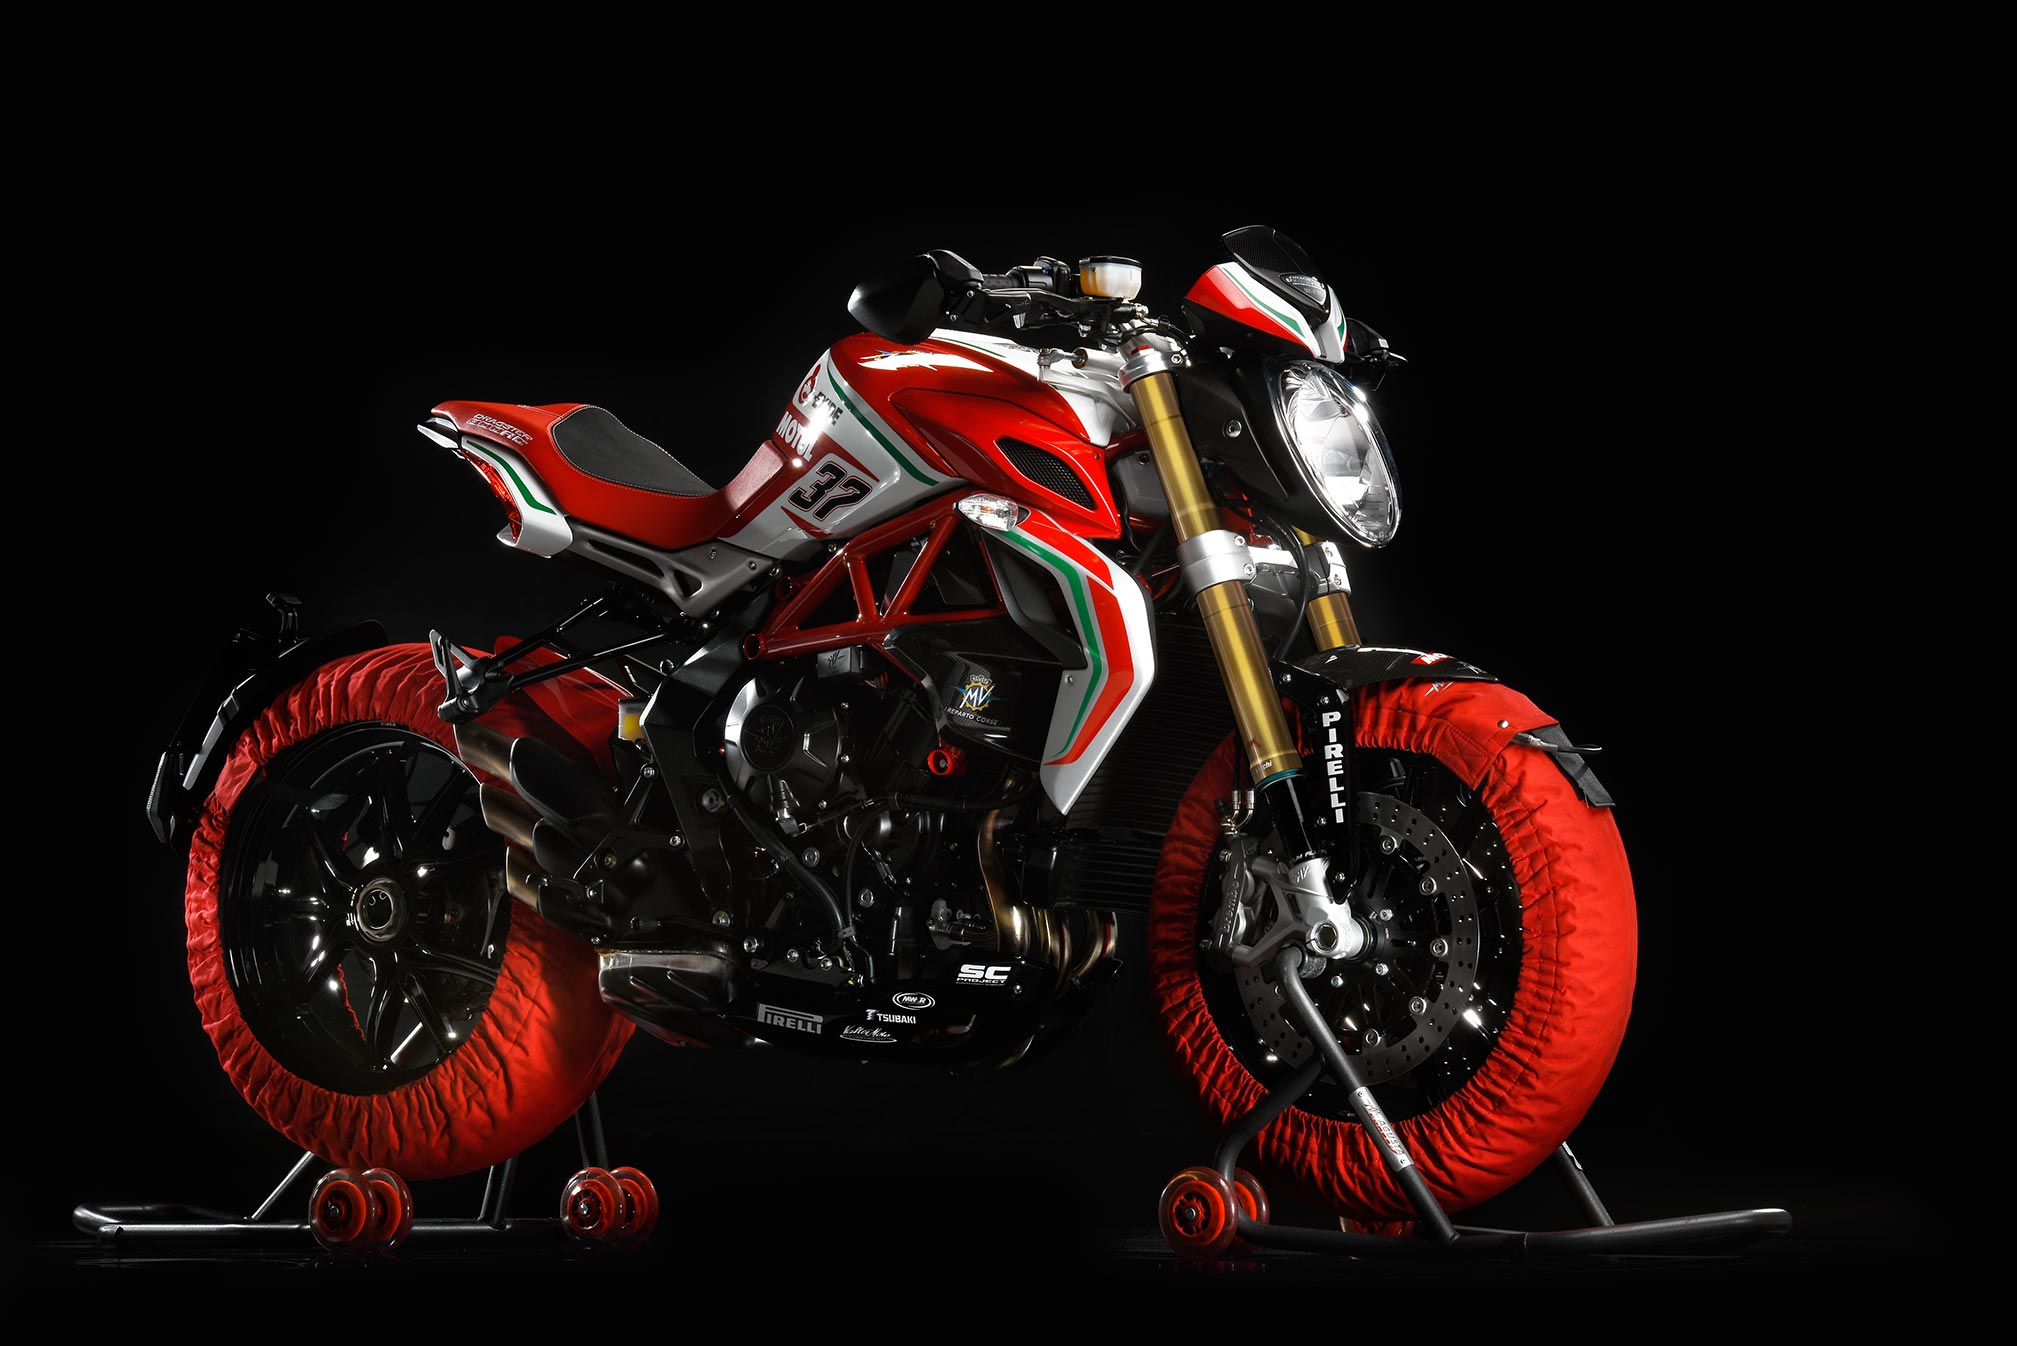 2017 mv agusta dragster 800 rc review gearopen. Black Bedroom Furniture Sets. Home Design Ideas